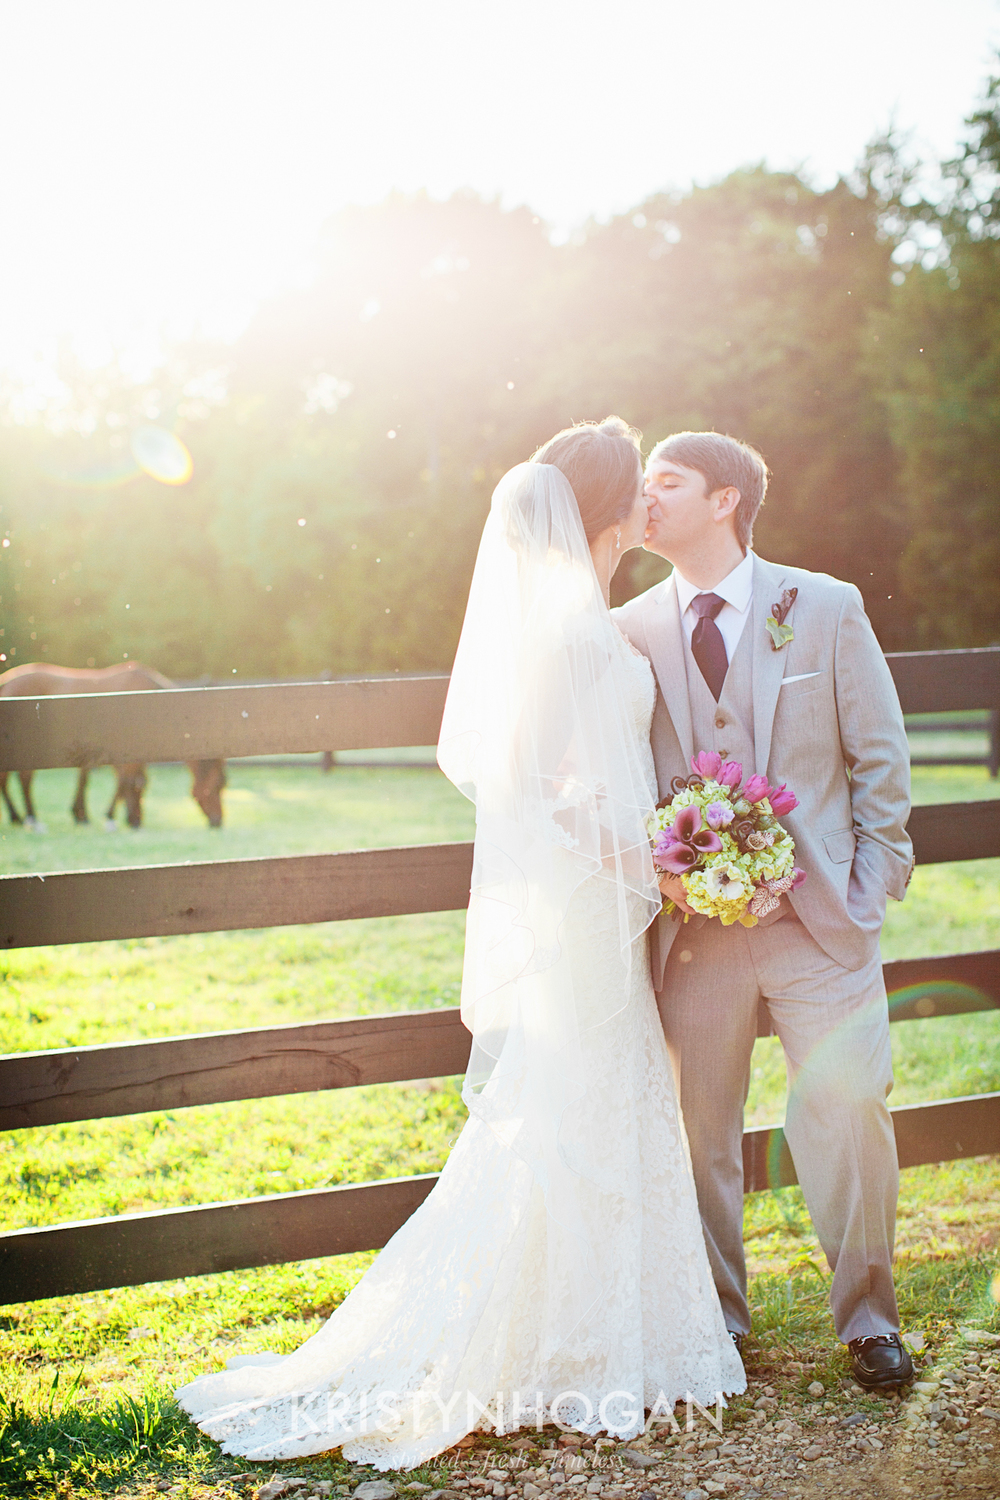 Nashville_Wedding_Photographer_Kristyn_Hogan_Samples_357.jpg